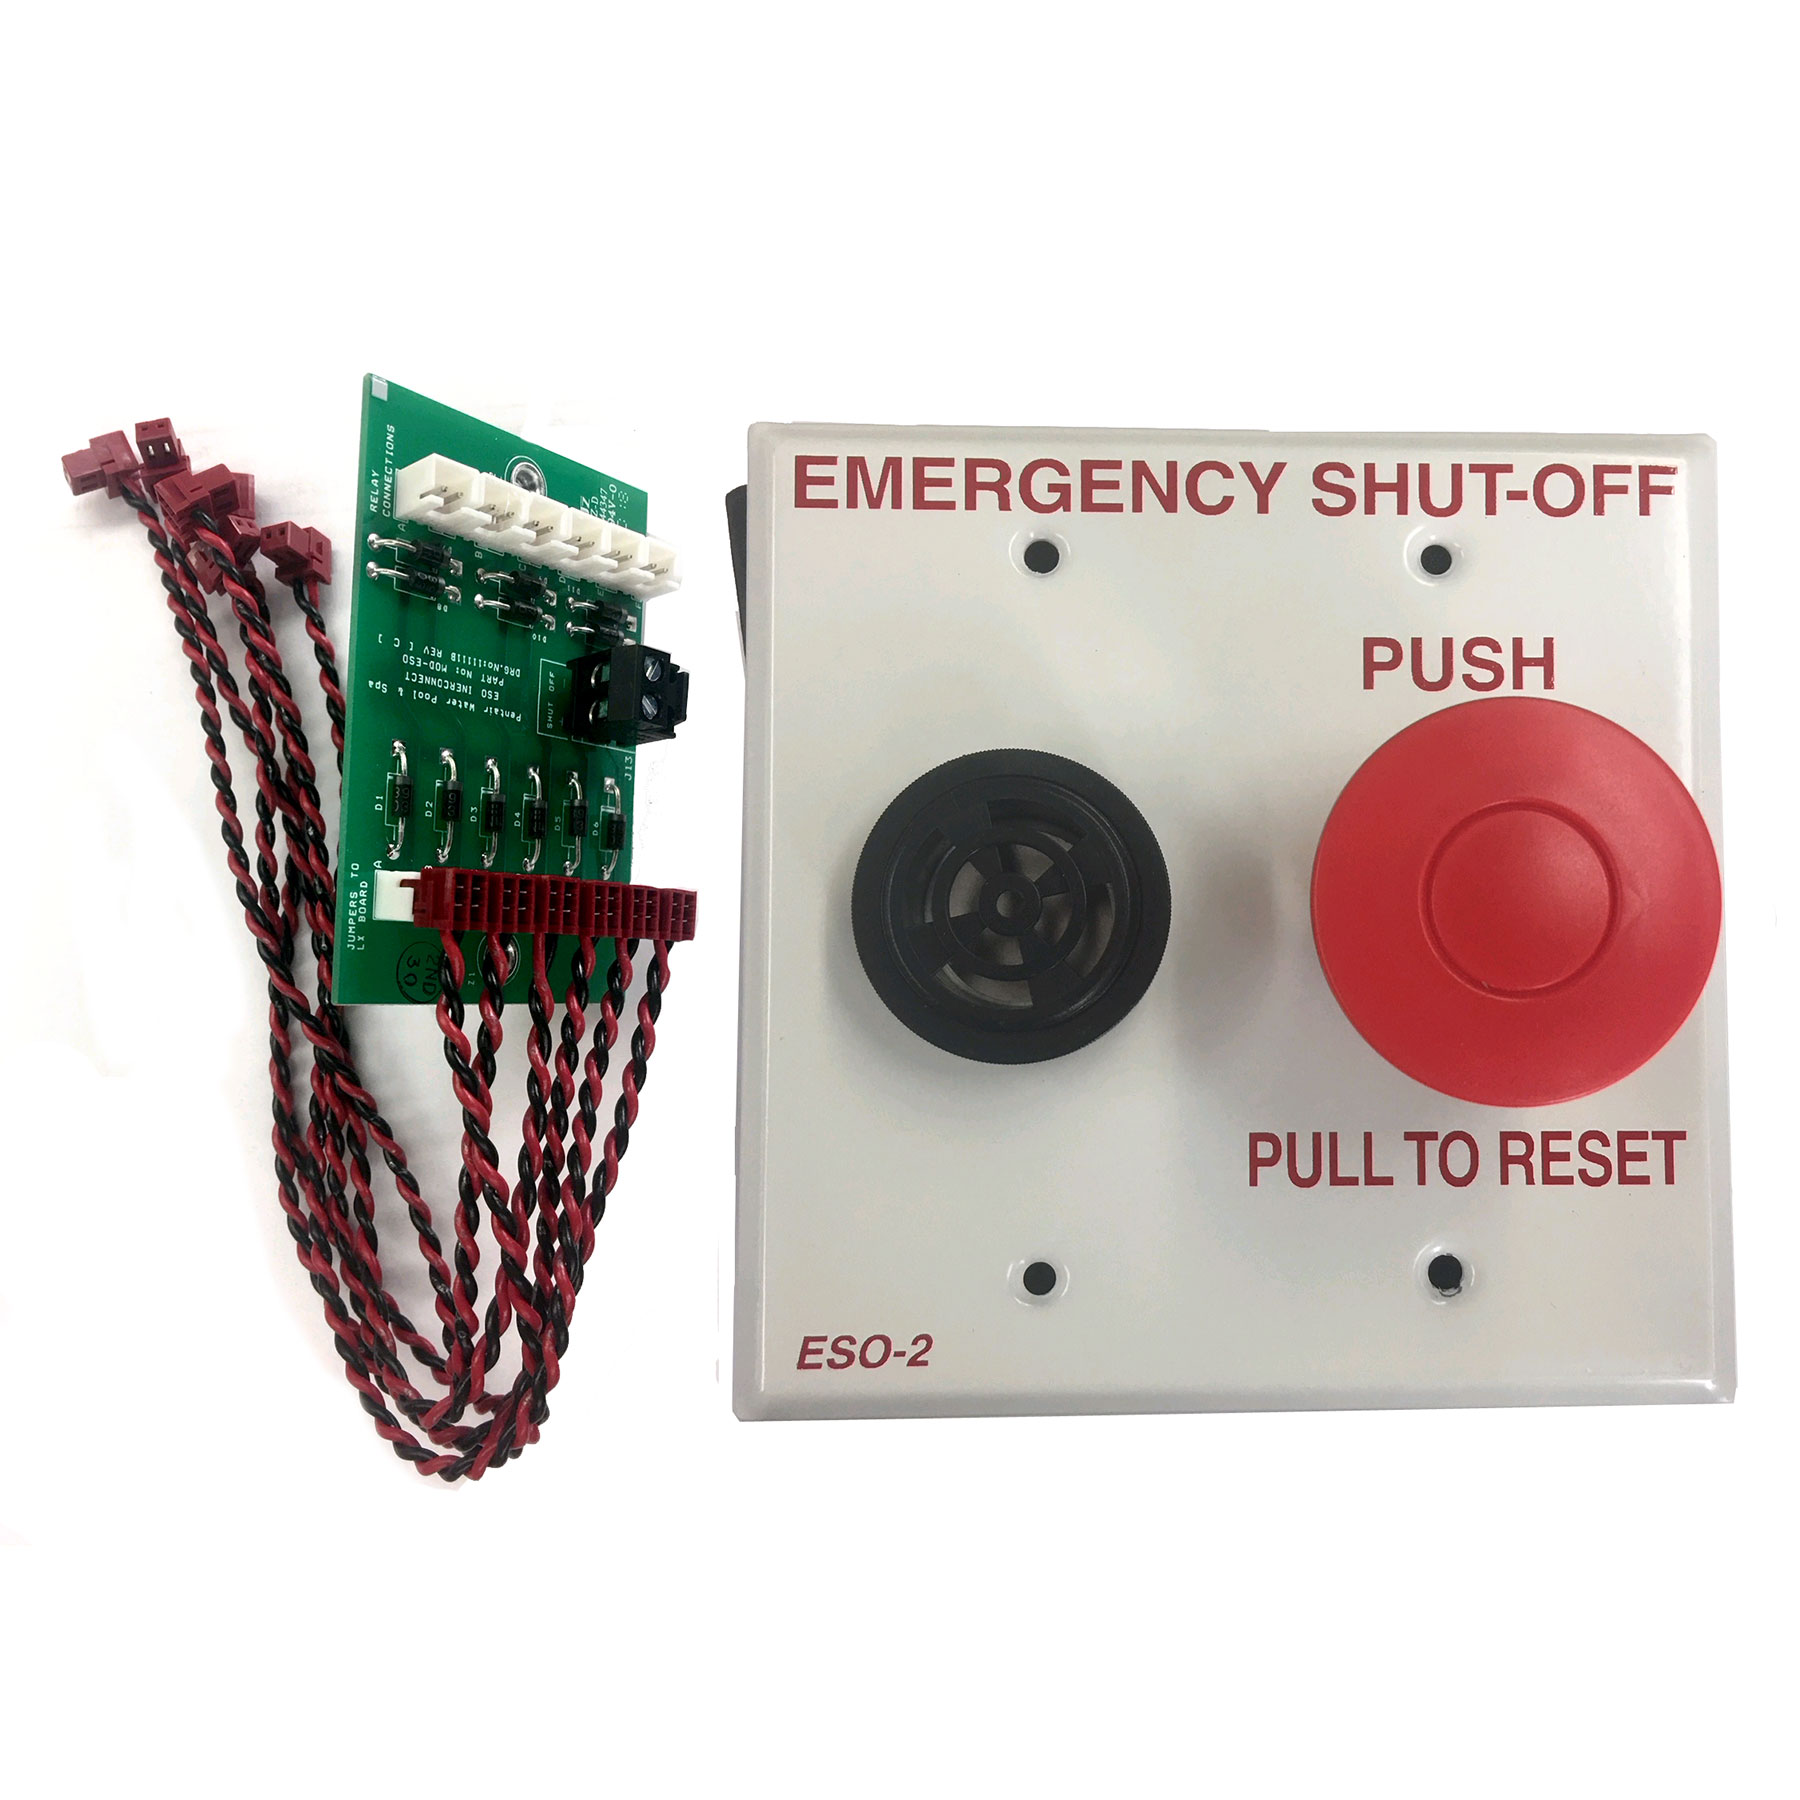 SHUT-OFF SWTCH WITH MODULE - Pentair Commercial